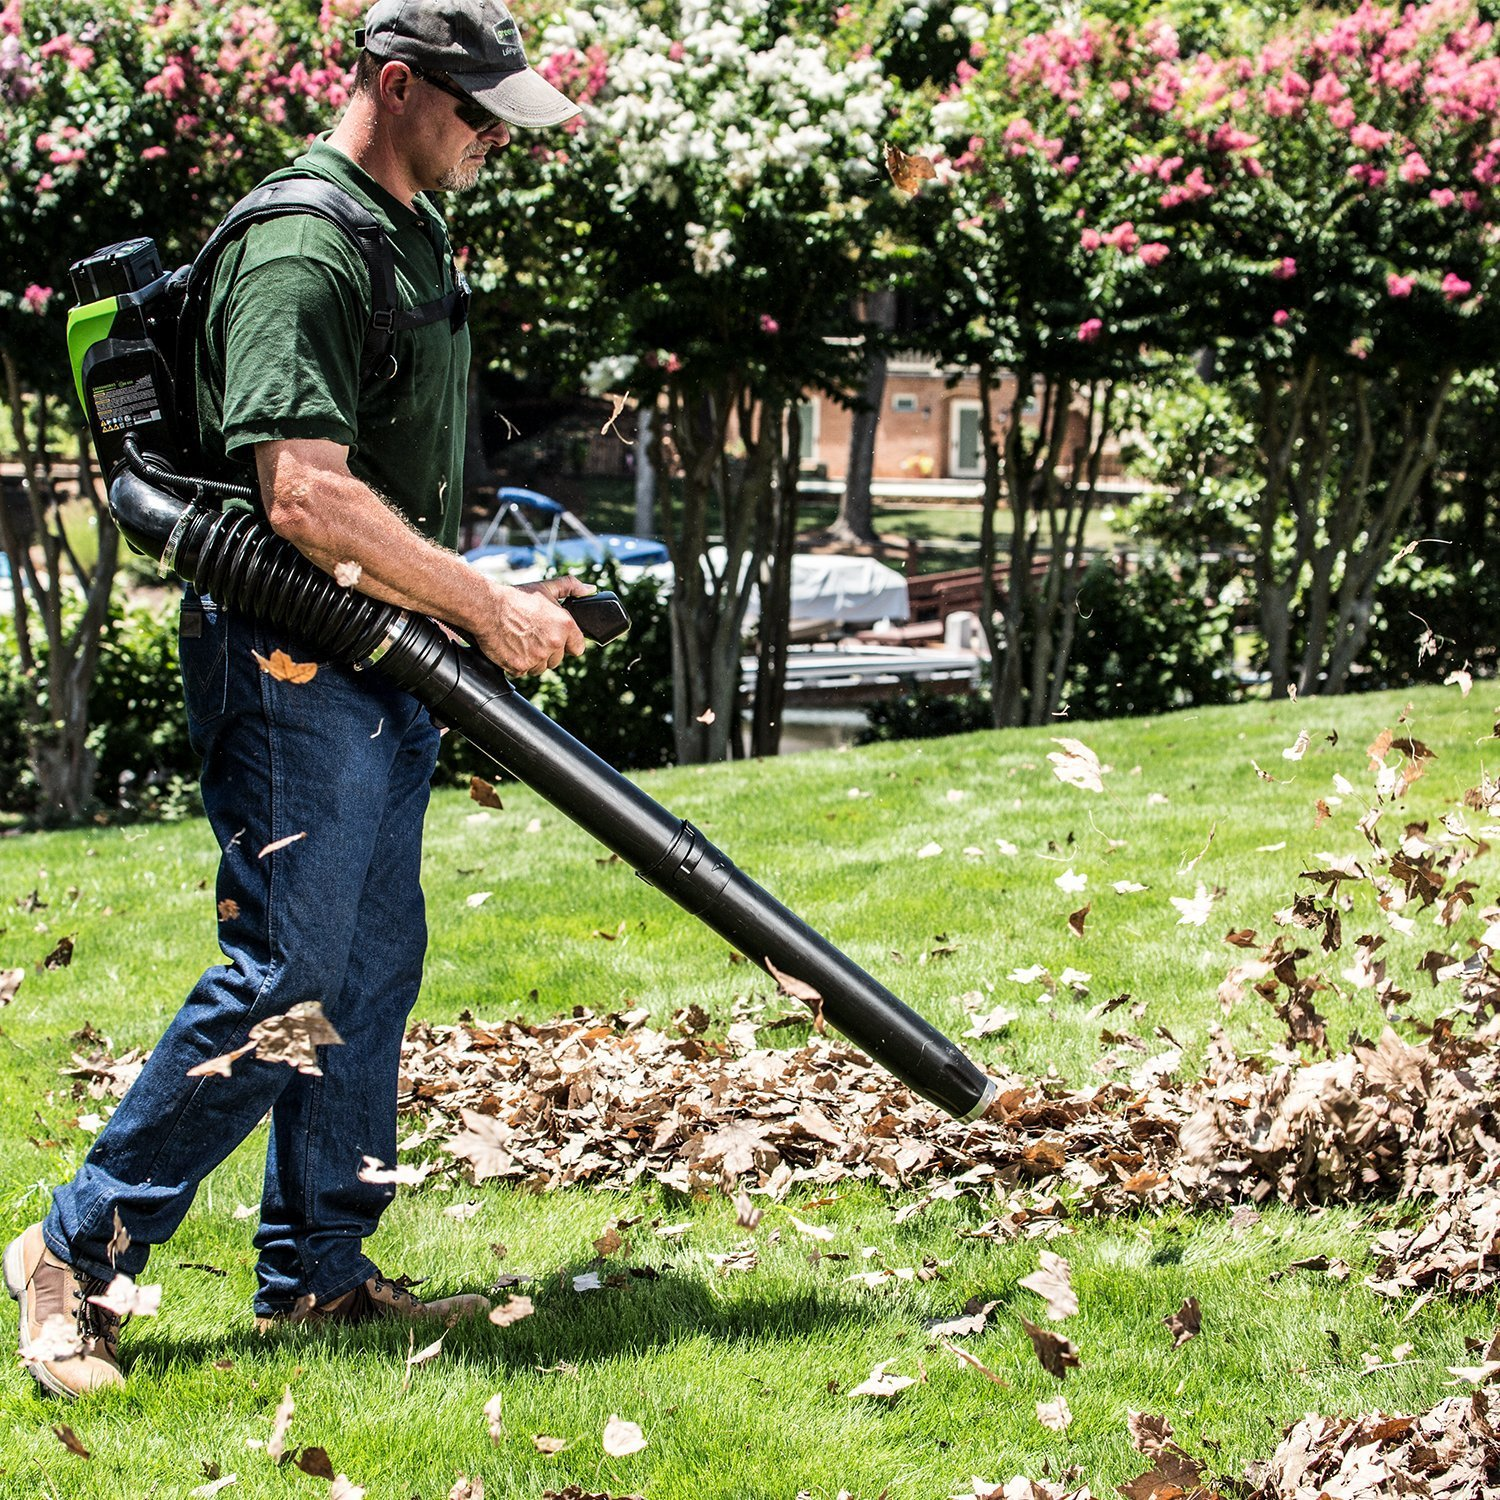 Greenworks BPB80L2510 80V 145MPH - 580CFM Cordless Backpack Blower, 2.5Ah Battery and Charger Included by Greenworks